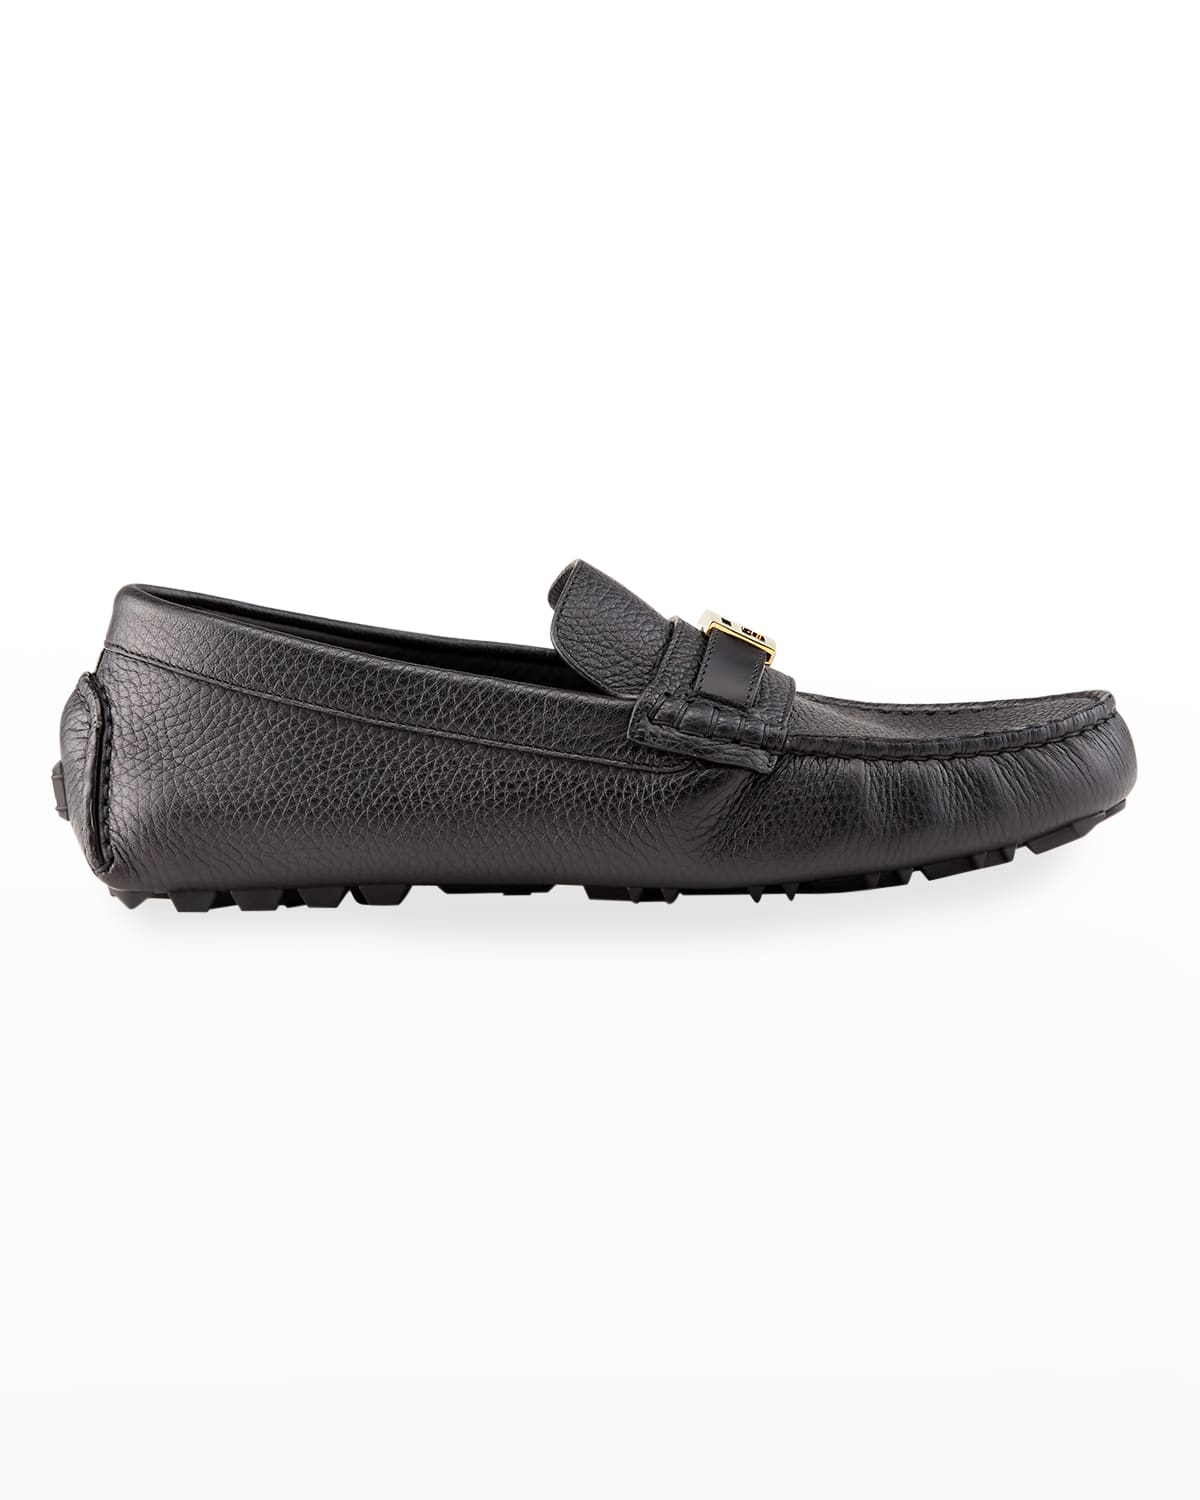 Men's Pebbled Leather Drivers w/ FF Buckle Strap